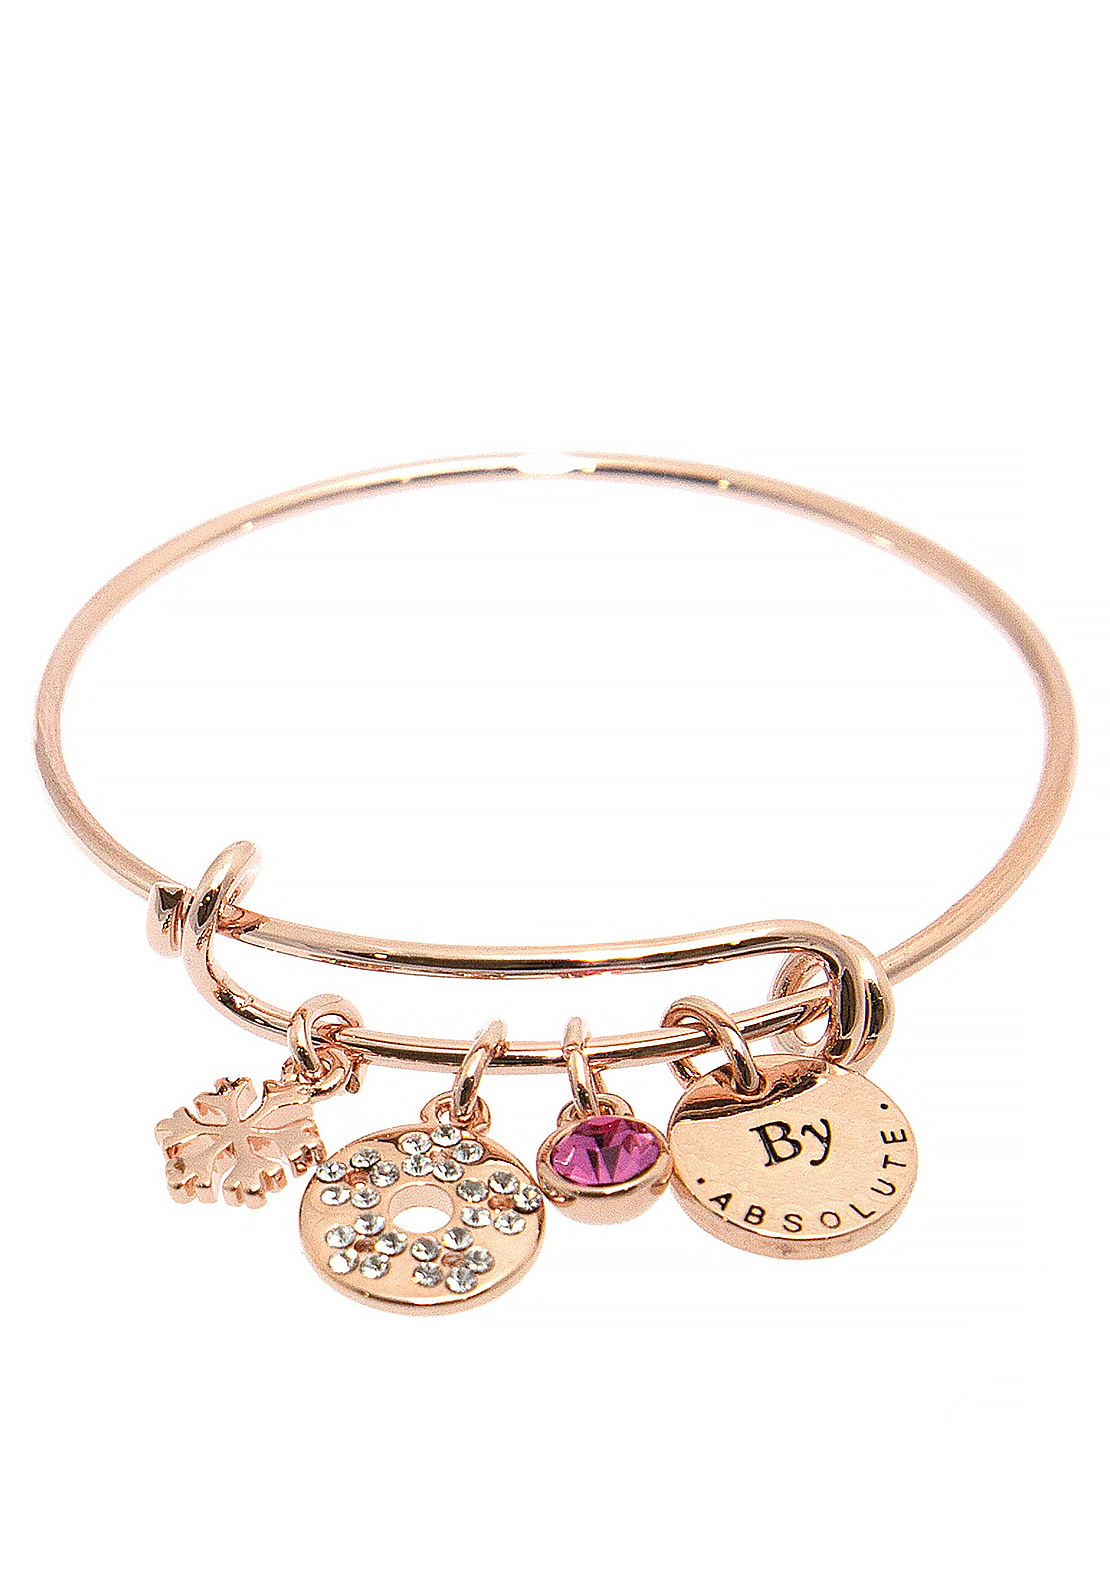 Absolute Jewellery Girls July Charm Bangle, Rose Gold